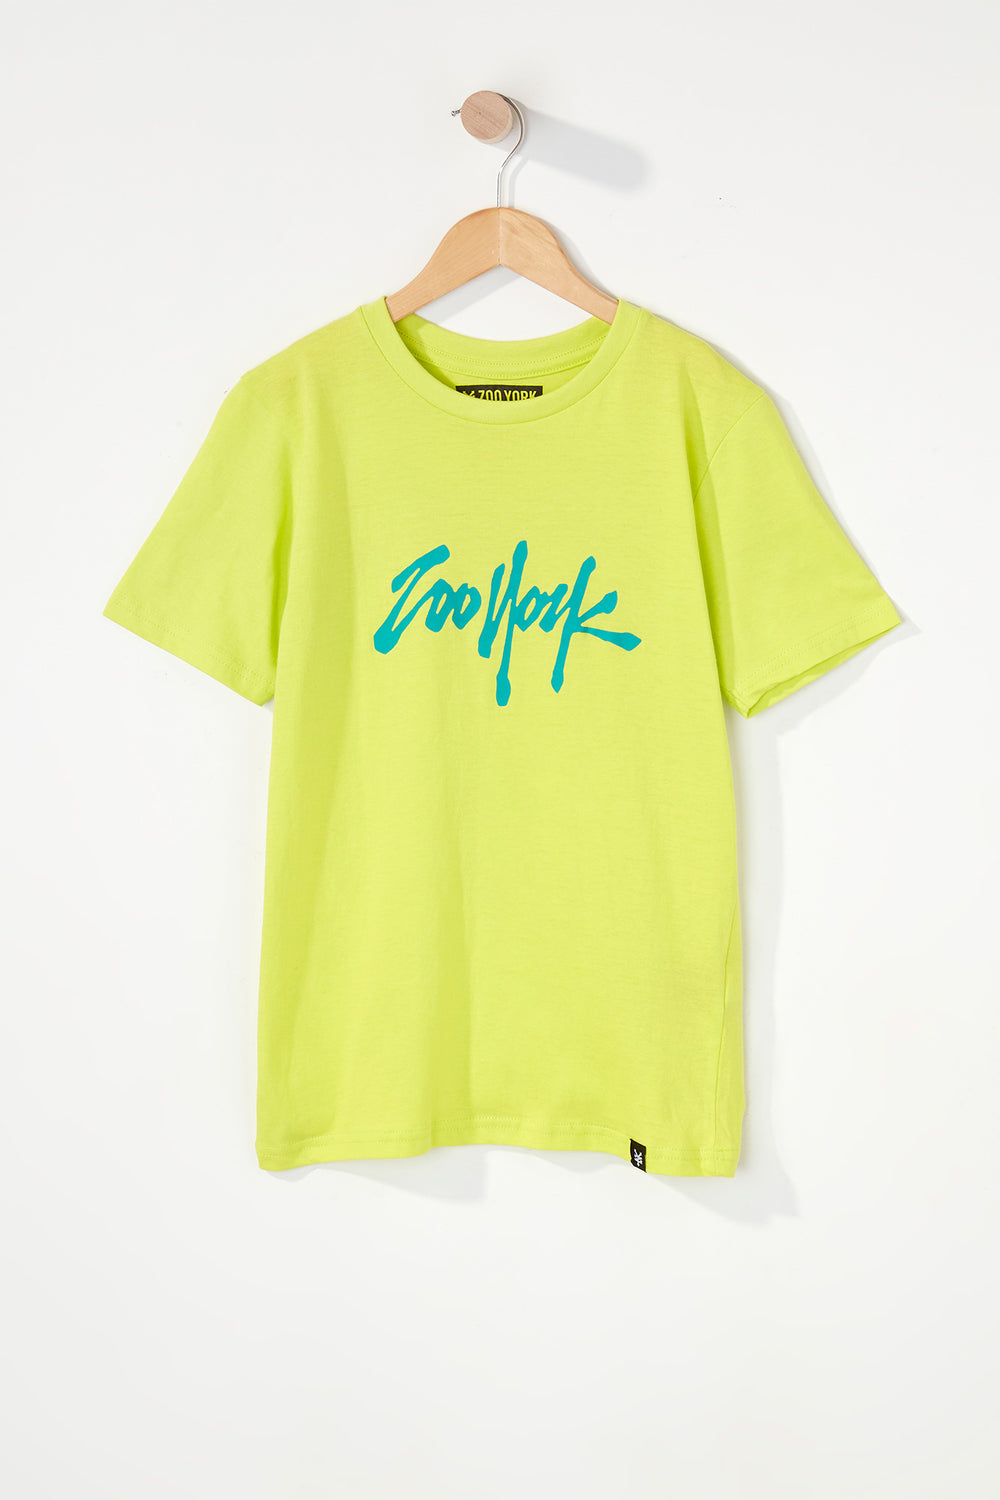 Zoo York Boys NYC 5 Boroughs T-Shirt Yellow